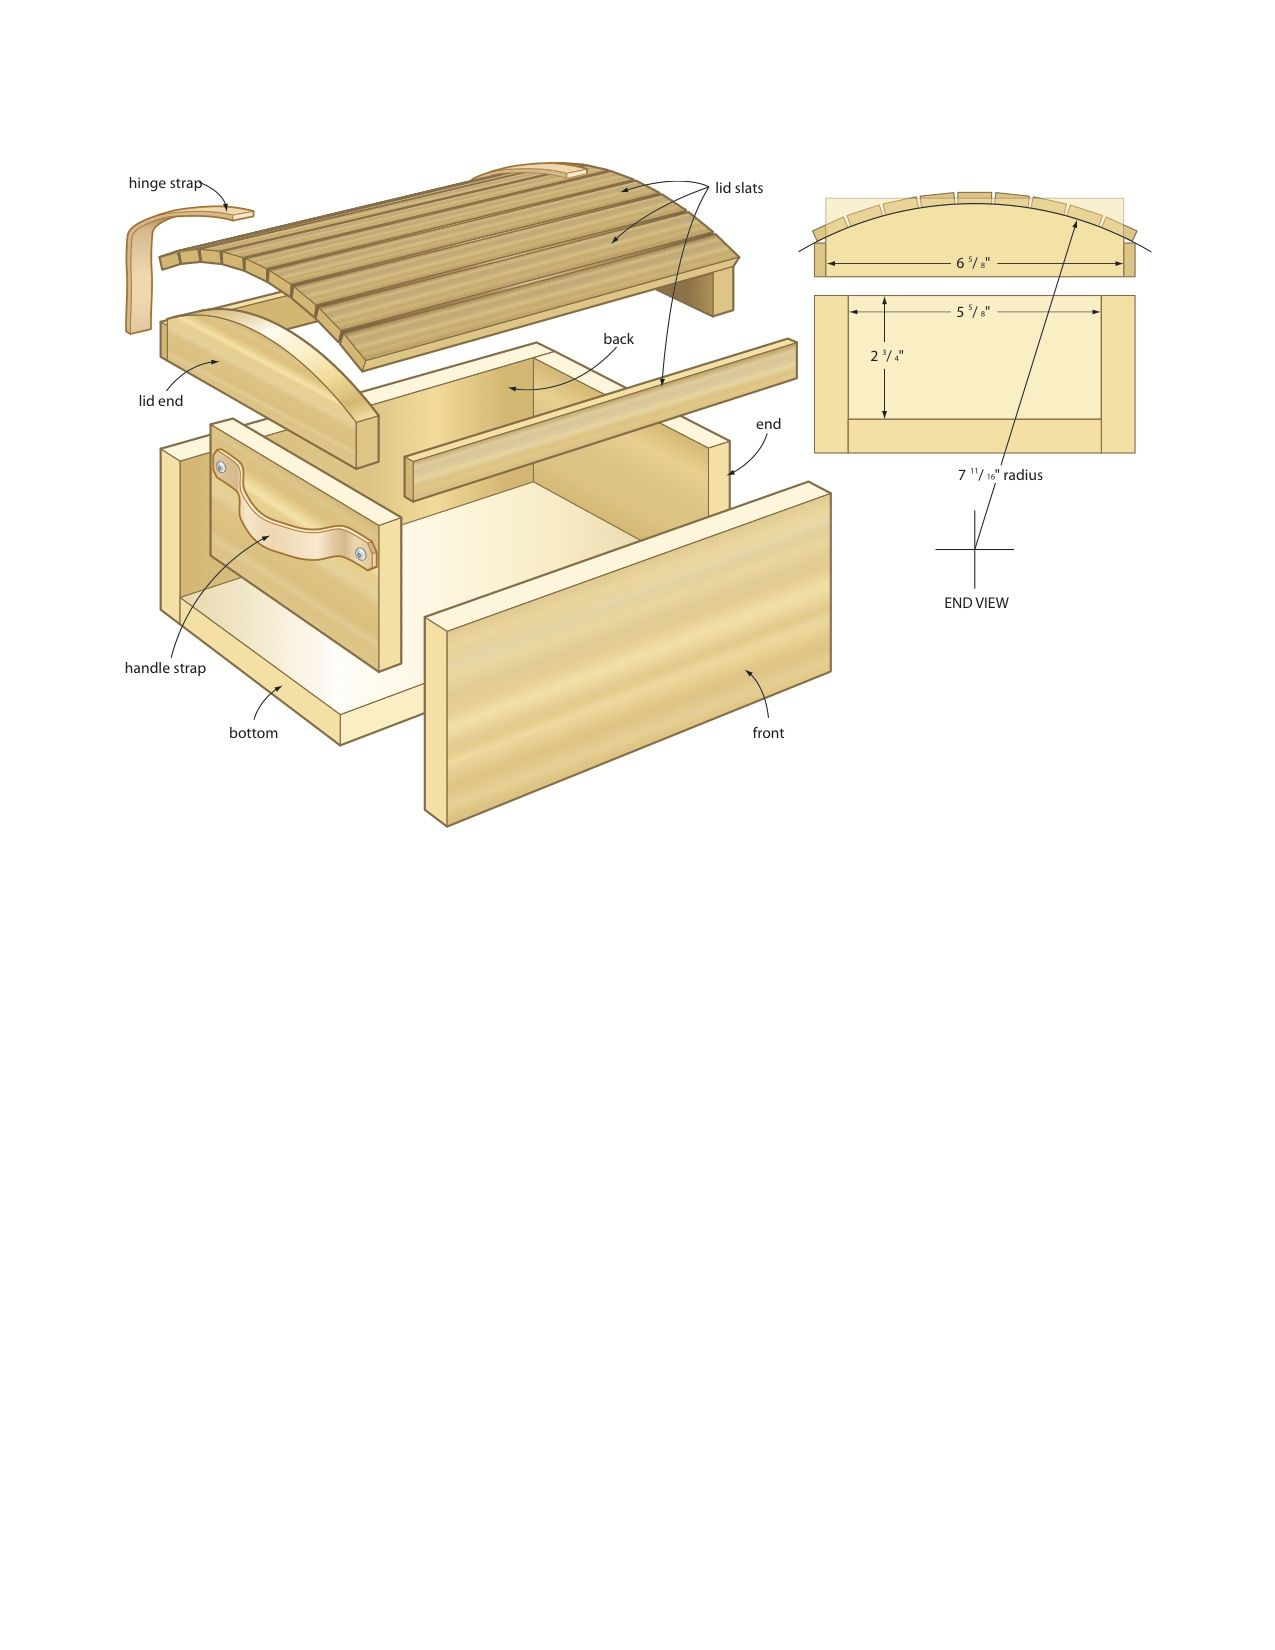 Wooden Pirates Chest Plans Diy Blueprints Pirates Chest Plans Whether For The Little Pirate Be Sure To Lik Chest Woodworking Plans Woodworking Plans Chests Diy